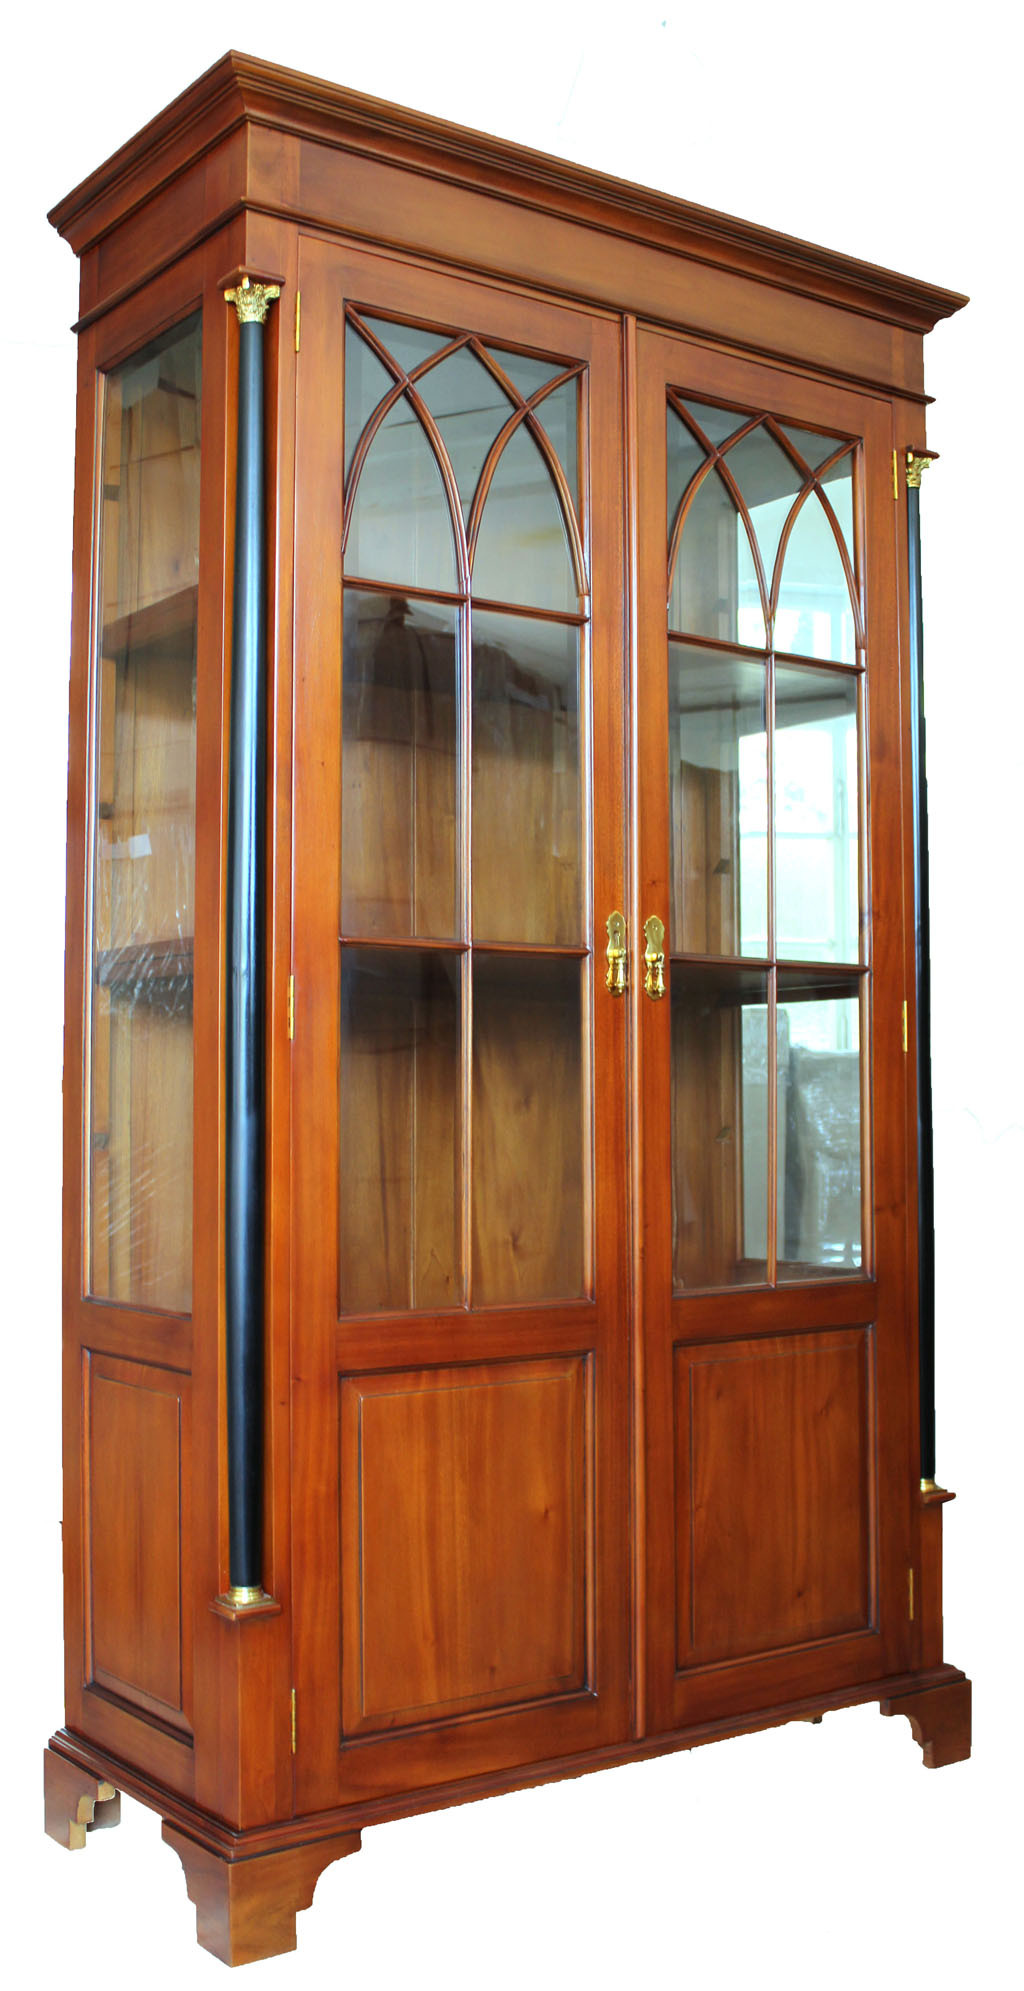 vitrine biedermeier kirsche massiv holz. Black Bedroom Furniture Sets. Home Design Ideas